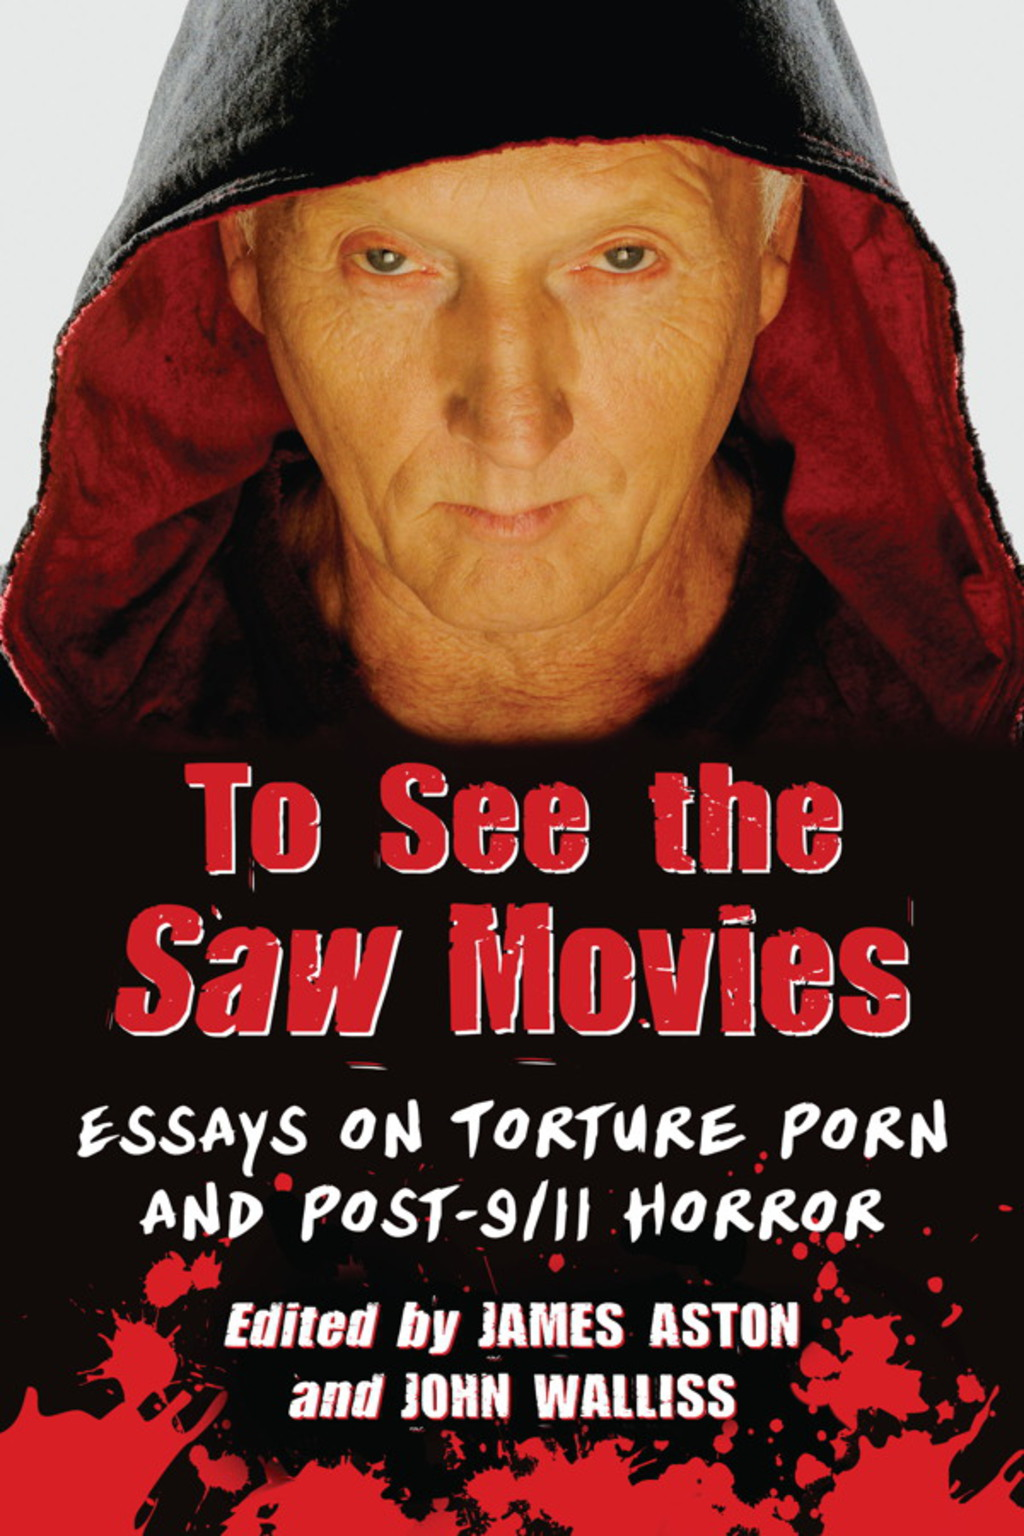 To See the Saw Movies: Essays on Torture Porn and Post-9/11 Horror (ebook) eBooks